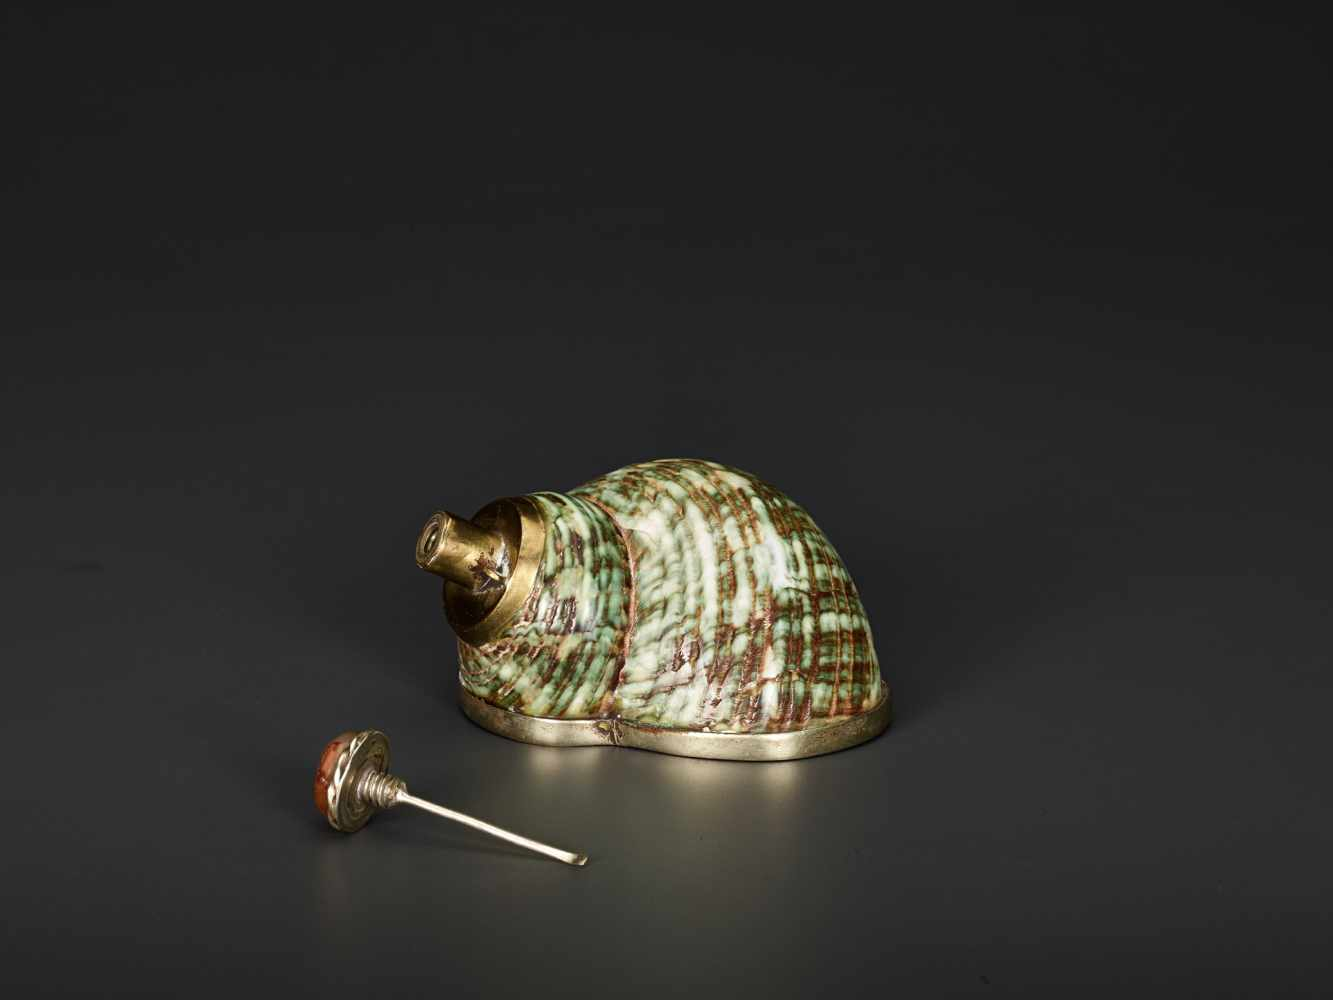 TURBO CONCH PERFUME CONTAINER WITH AGATE STOPPER, 19th CENTURYTurbo conch, silver plate metal and - Image 2 of 6